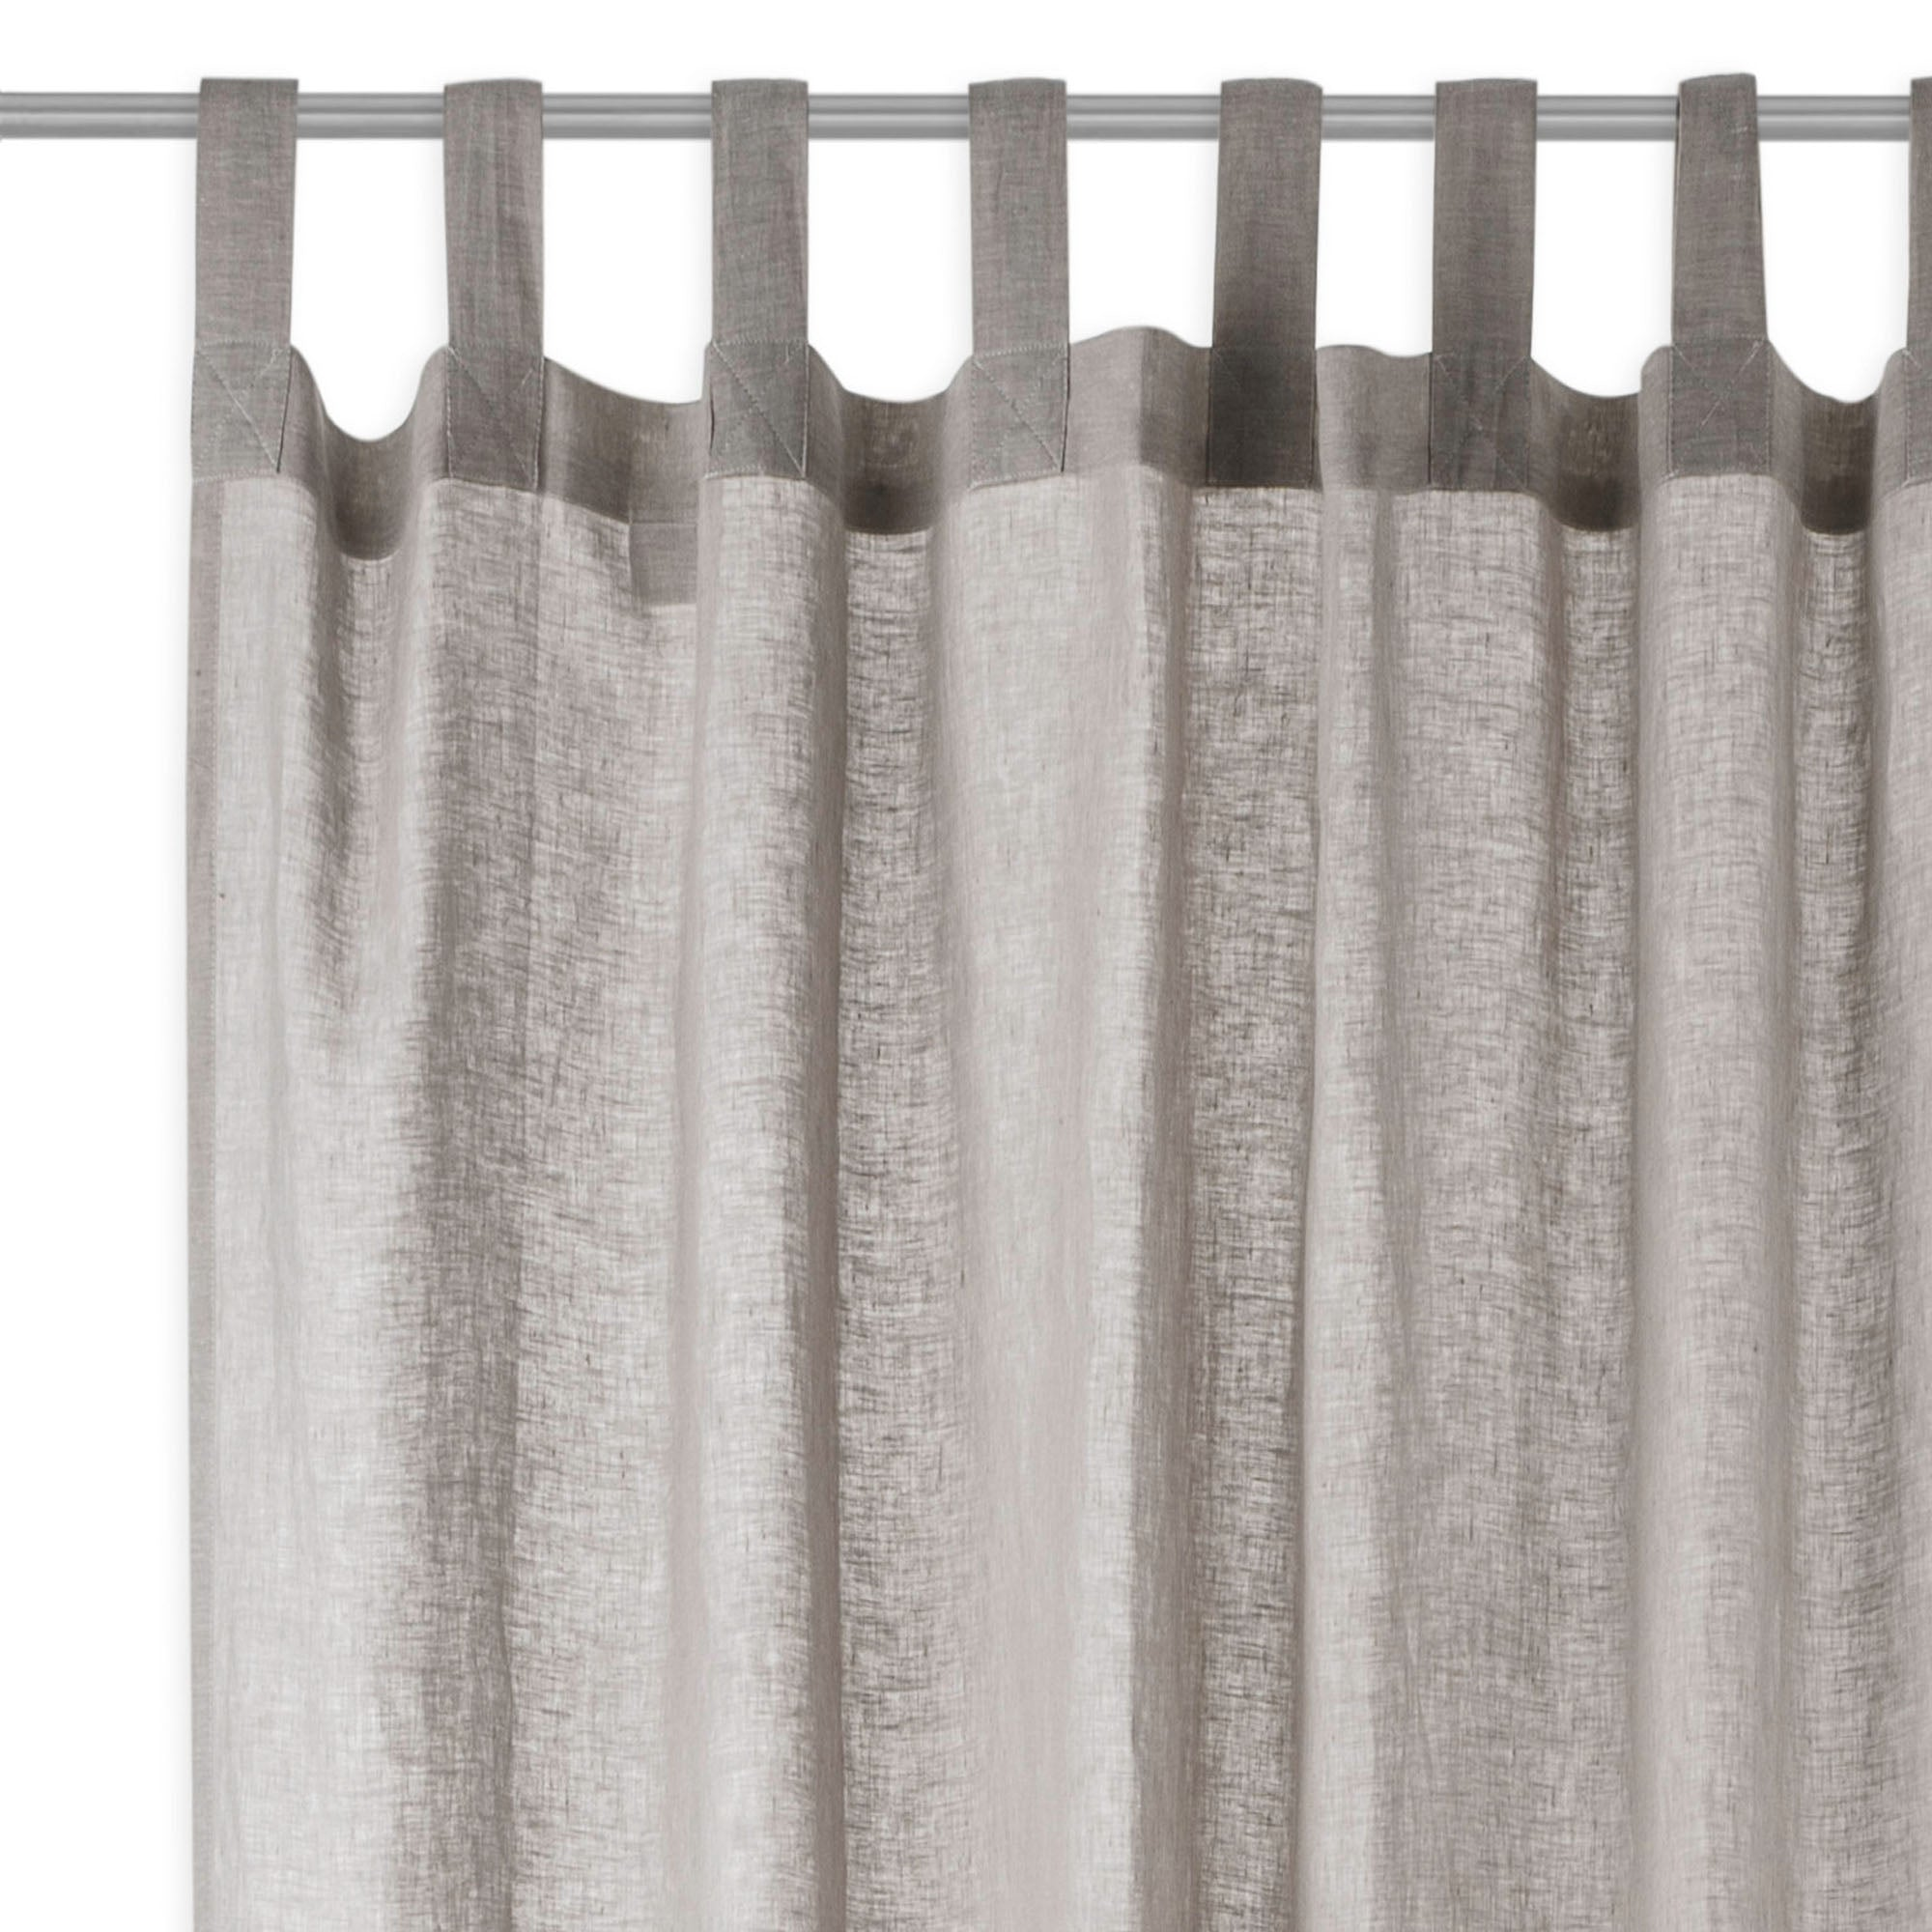 Cuyabeno Curtain [Grey]